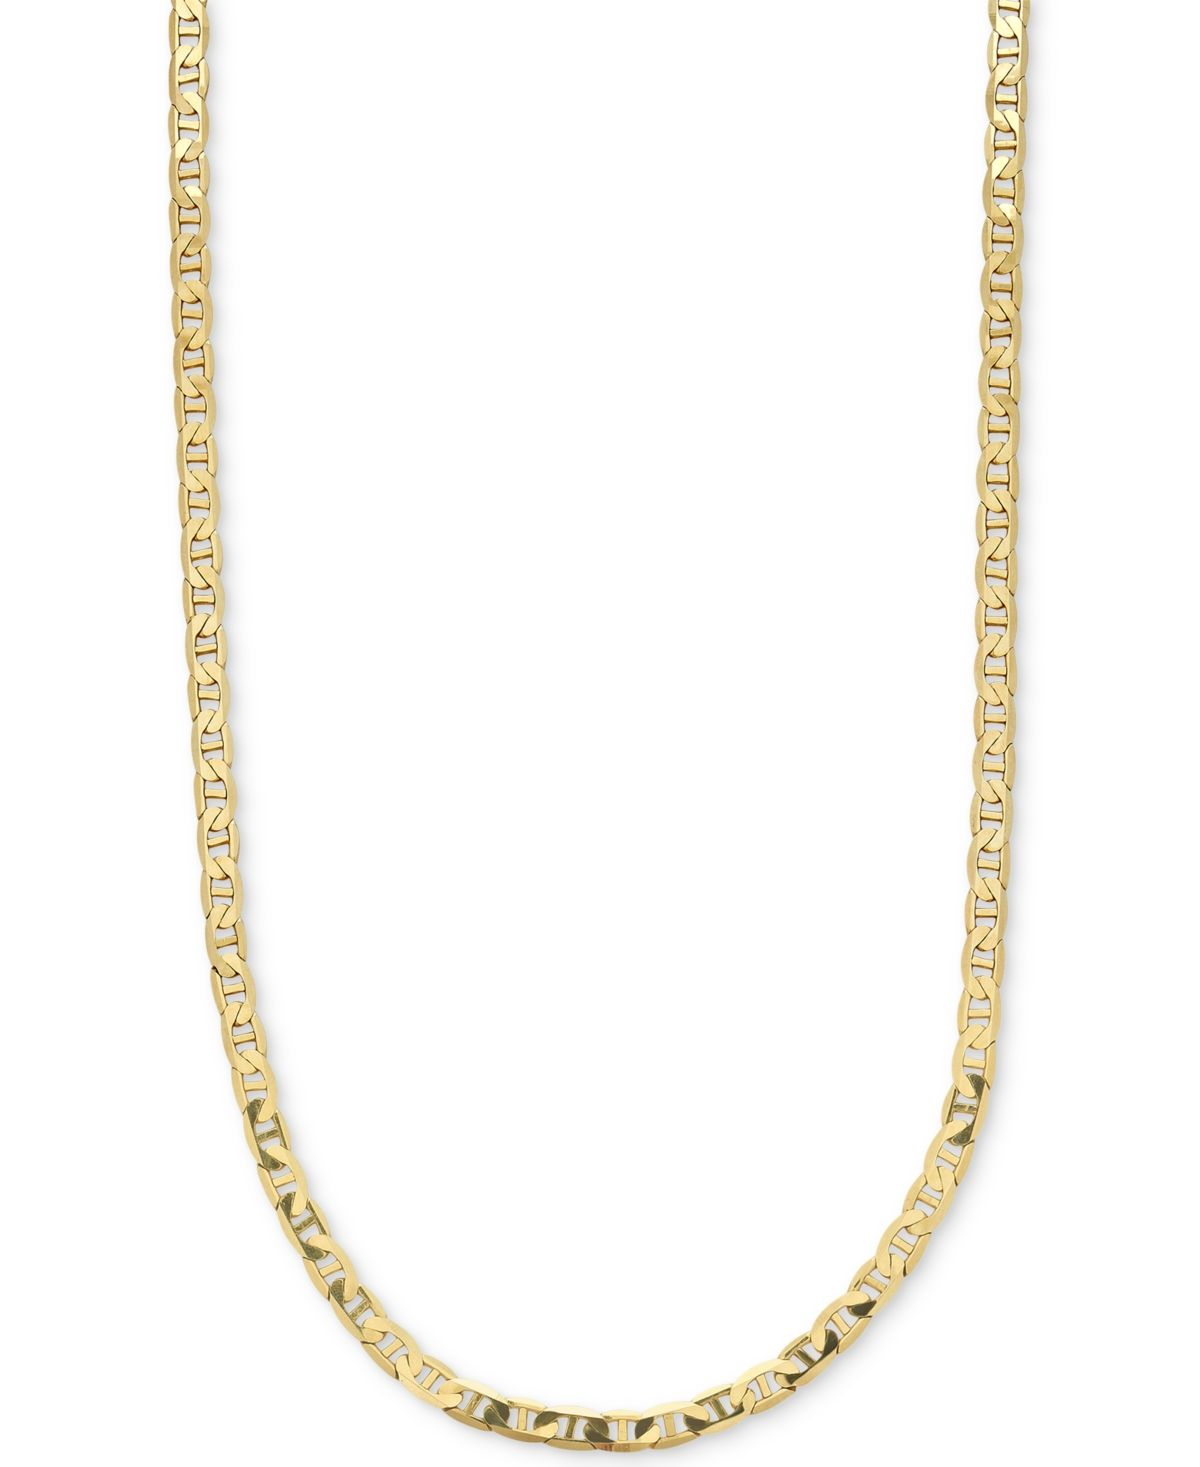 Men S Open Link 22 Chain Necklace 5 5 8mm In 10k Gold In 2020 Gold Necklace For Men Gold Chains For Men Macys Mens